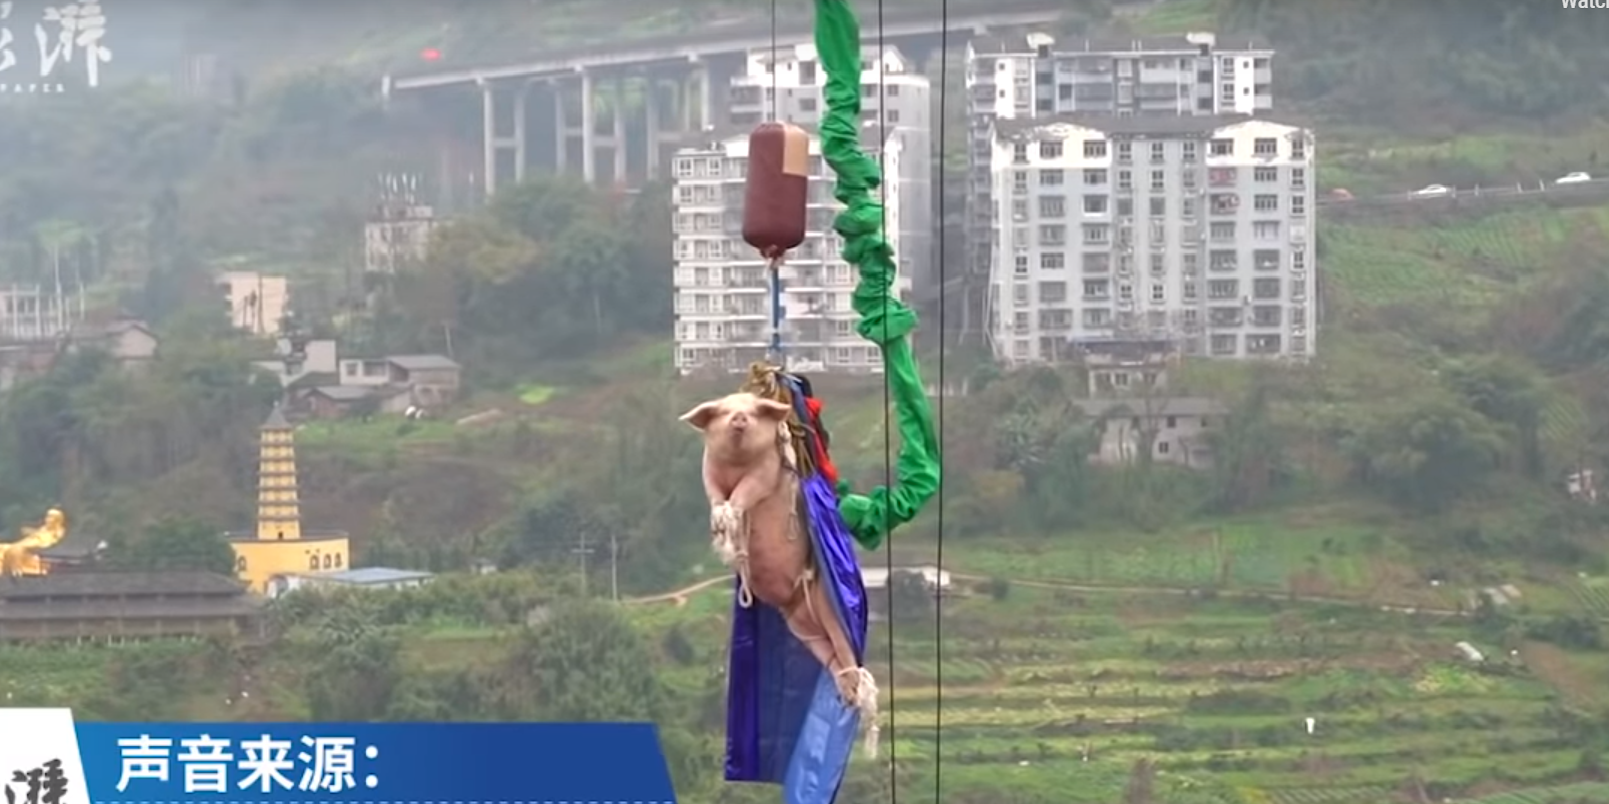 WATCH: Chinese pig wearing cape FLIES off bungee jump